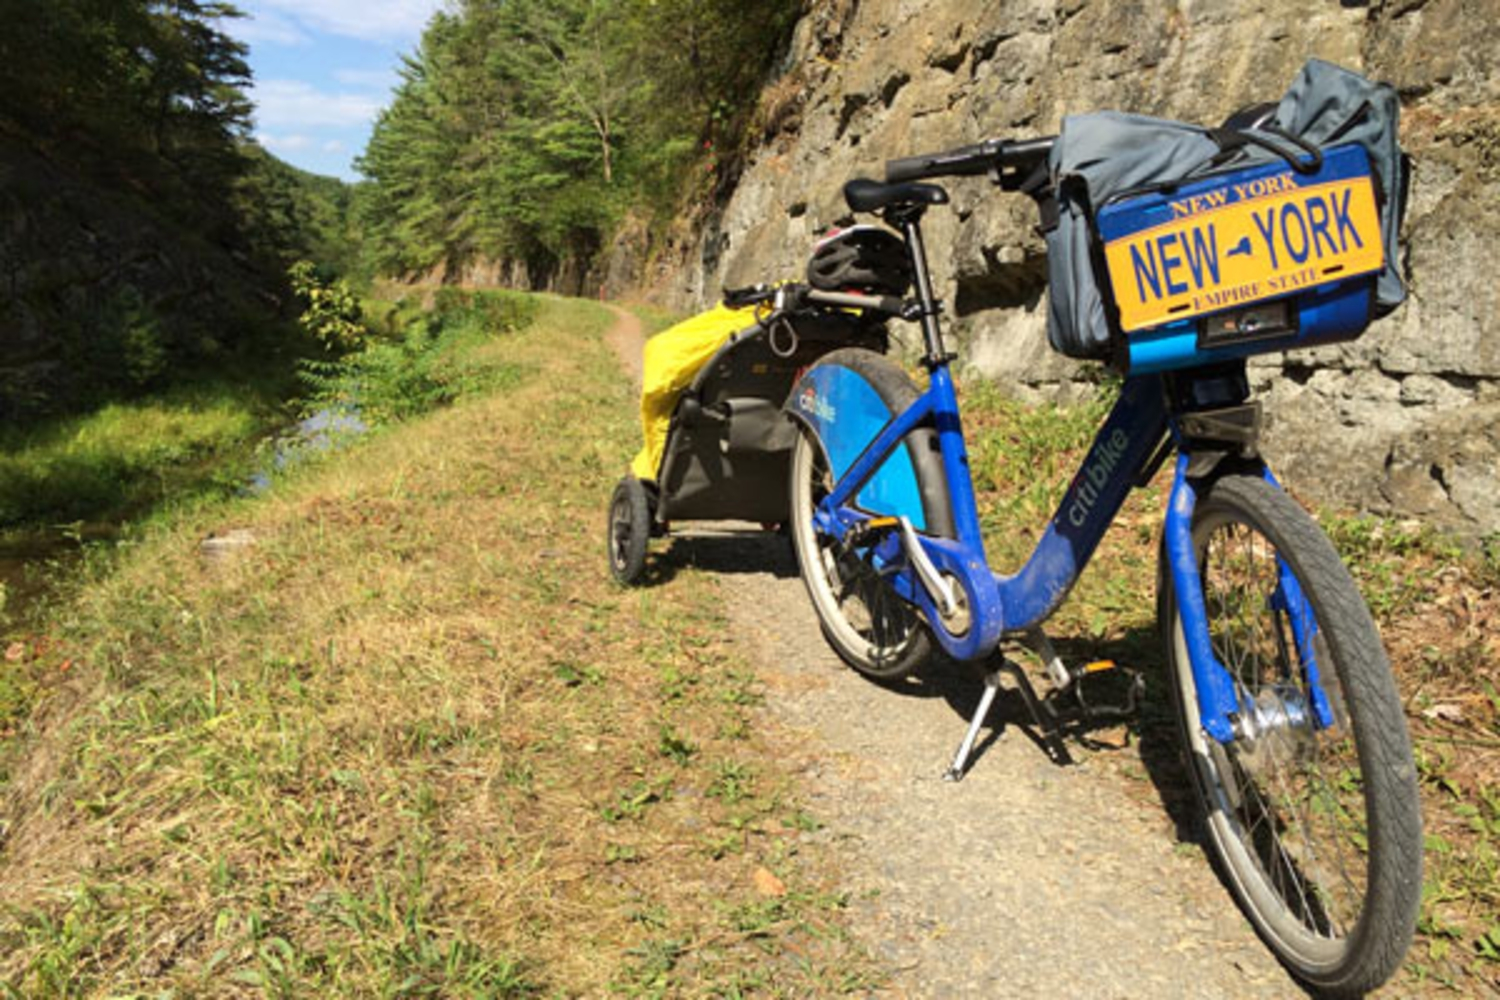 Tanenhaus marks mile 155 of the dusty C&O Canal Towpath, near Paw Paw, WV.